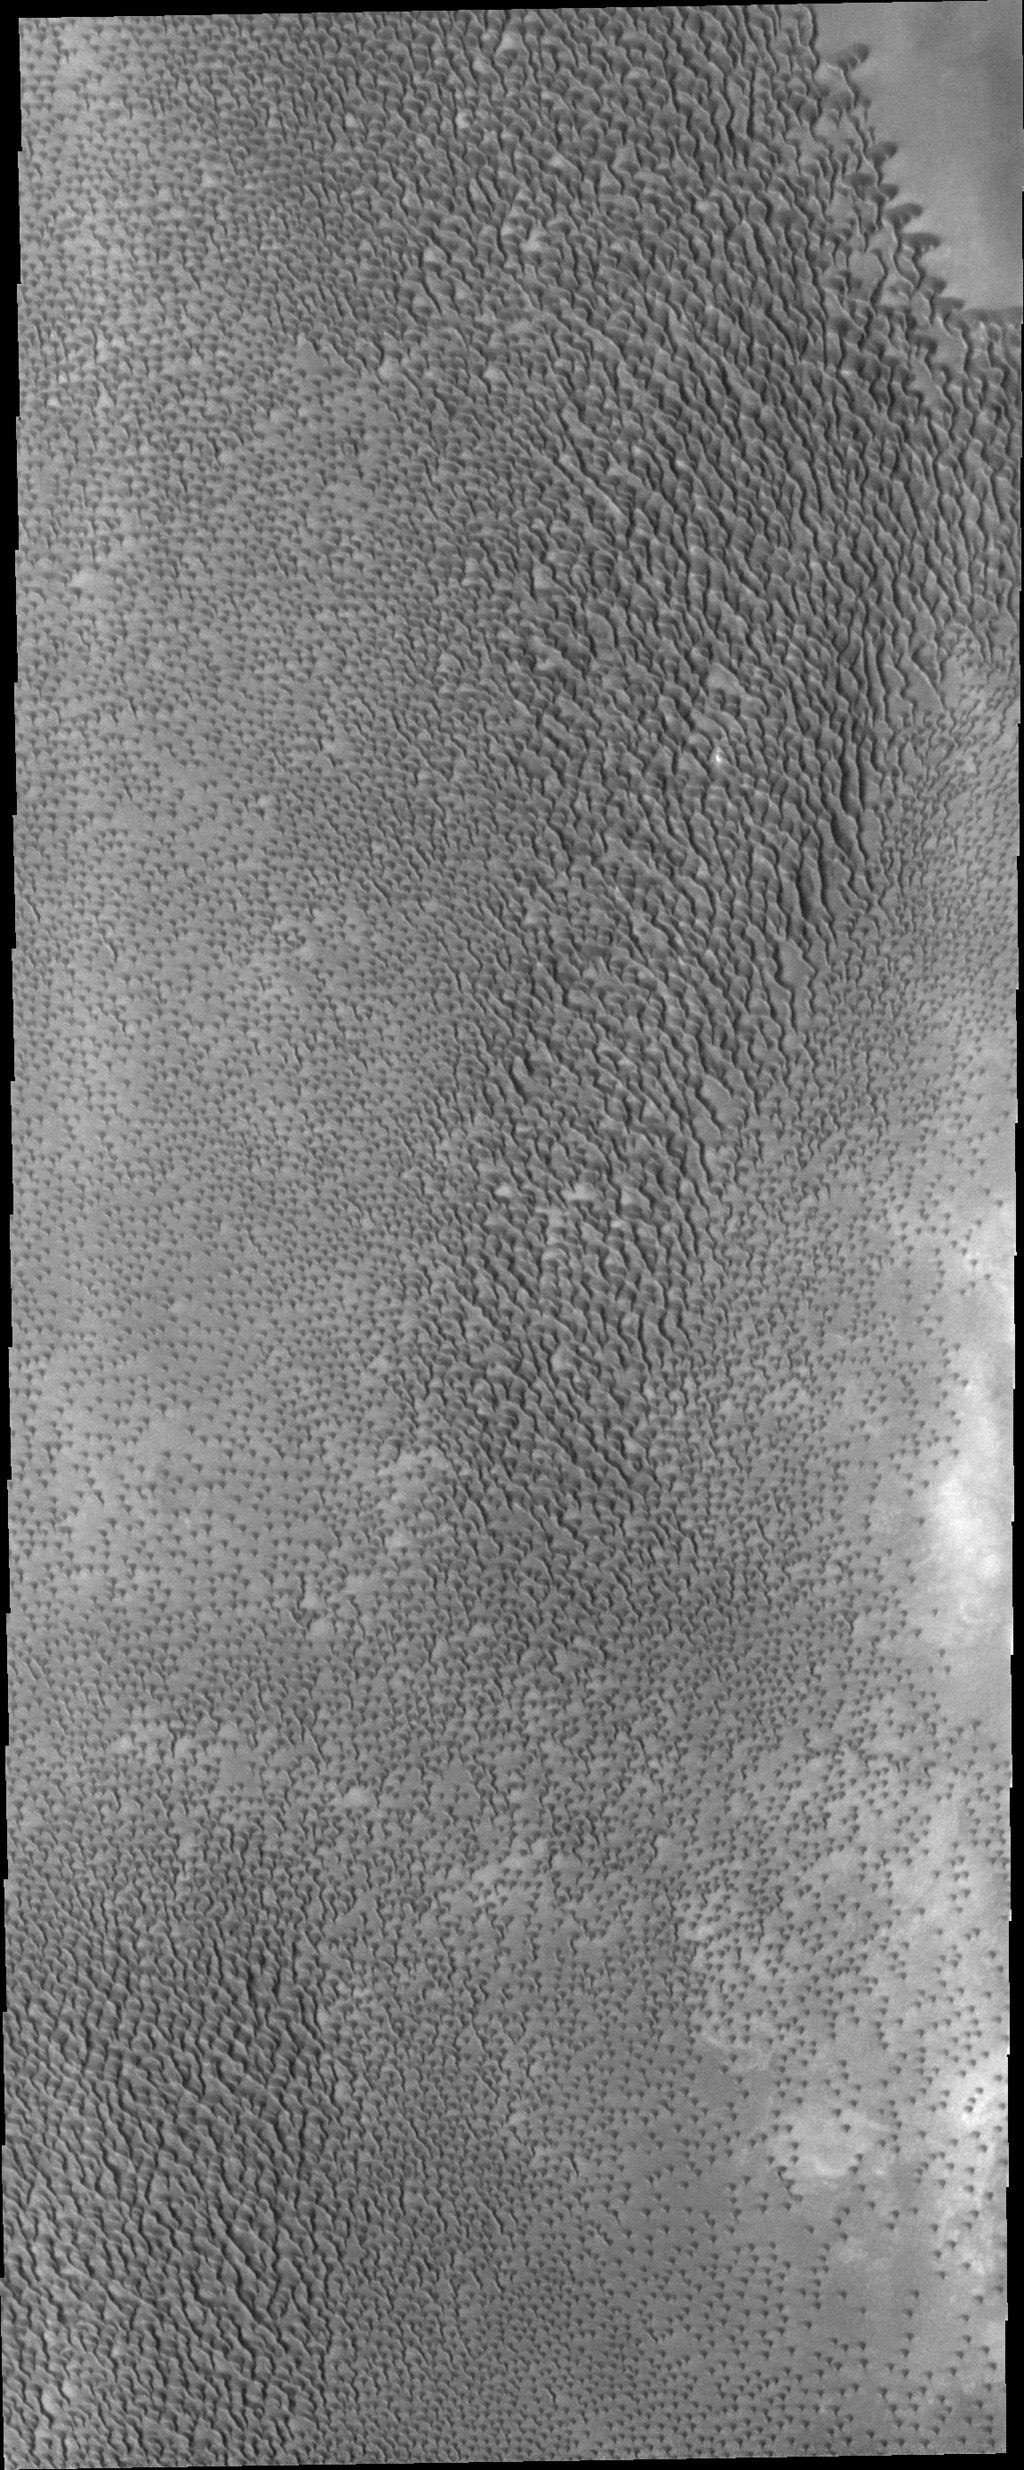 This image from NASA's 2001 Mars Odyssey spacecraft shows part of a dune field near the north polar cap. This is not Olympia Undae, the largest dune field near the north polar cap, but is rather a portion of a smaller dune field further to the east.